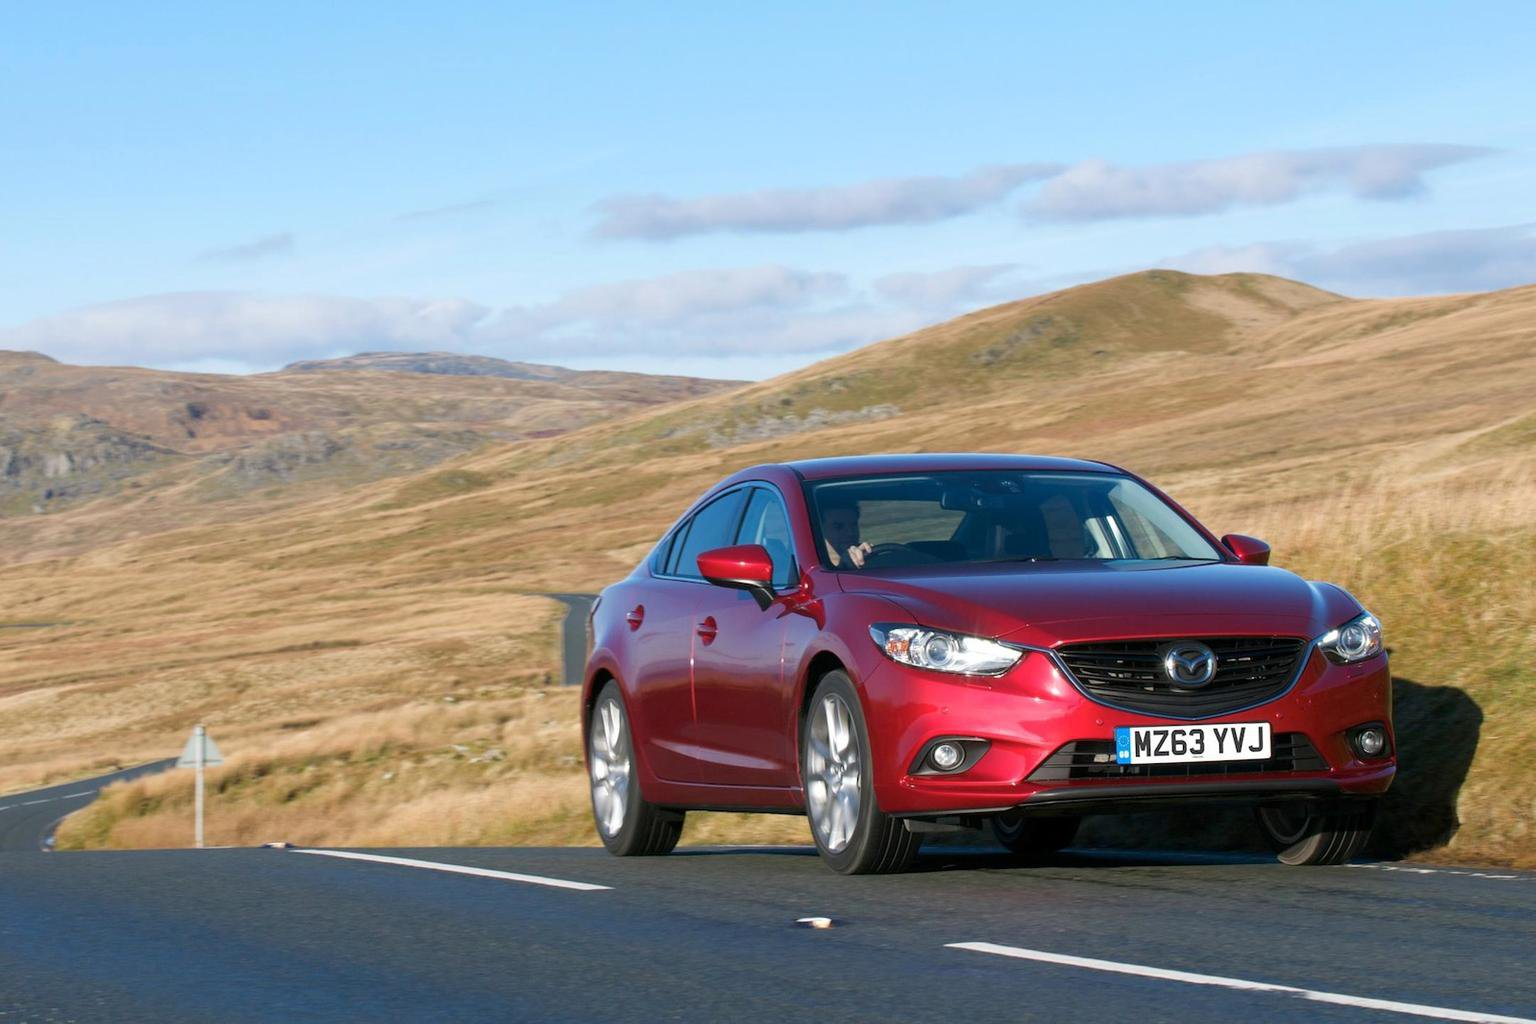 Mazda: 'We don't need hybrids'